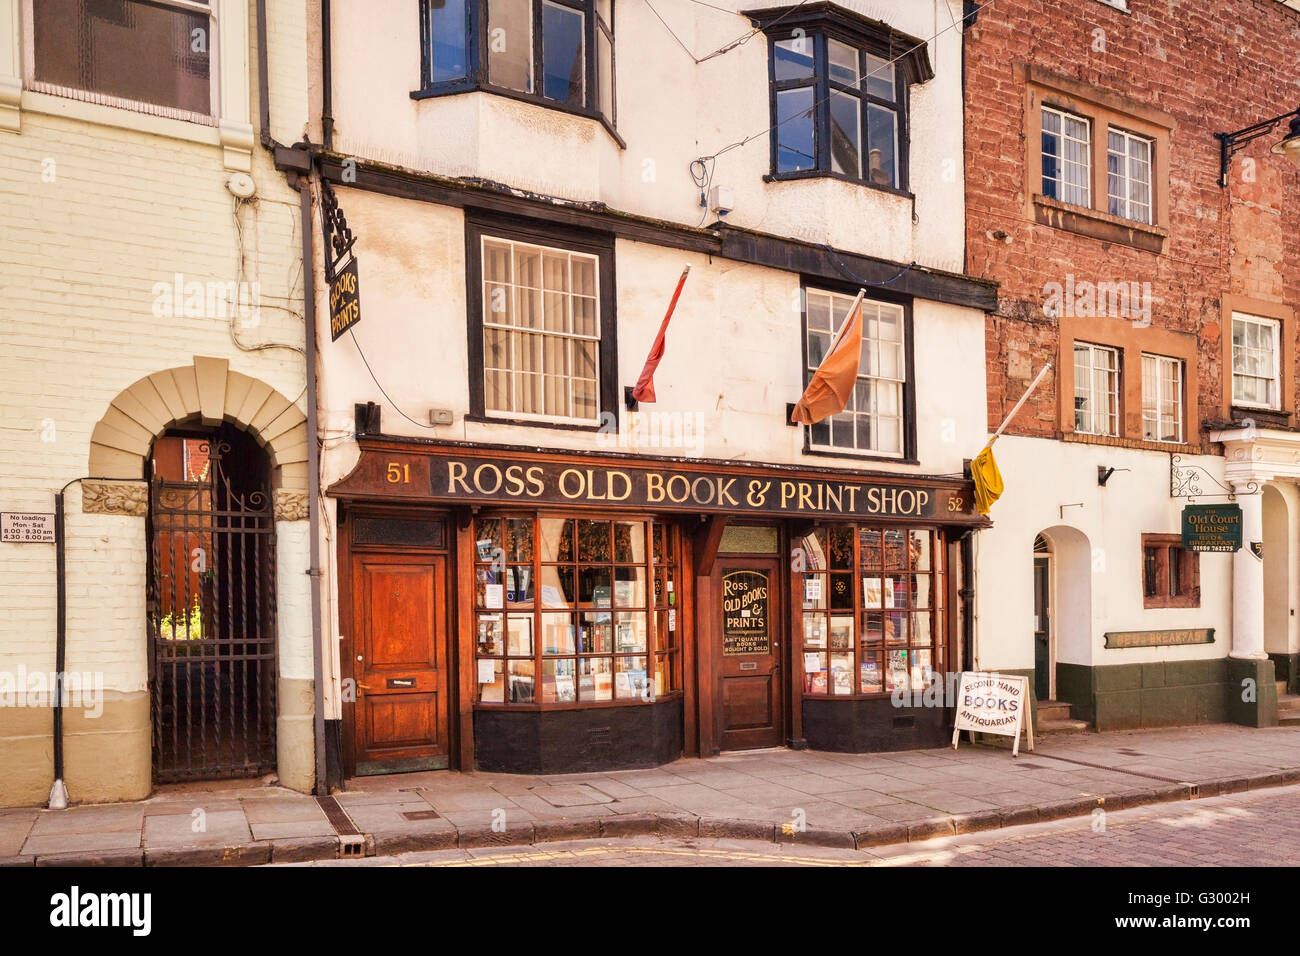 Ross Old Book and Print Shop, high street, Ross on Wye, Herefordshire, England, UK - Stock Image